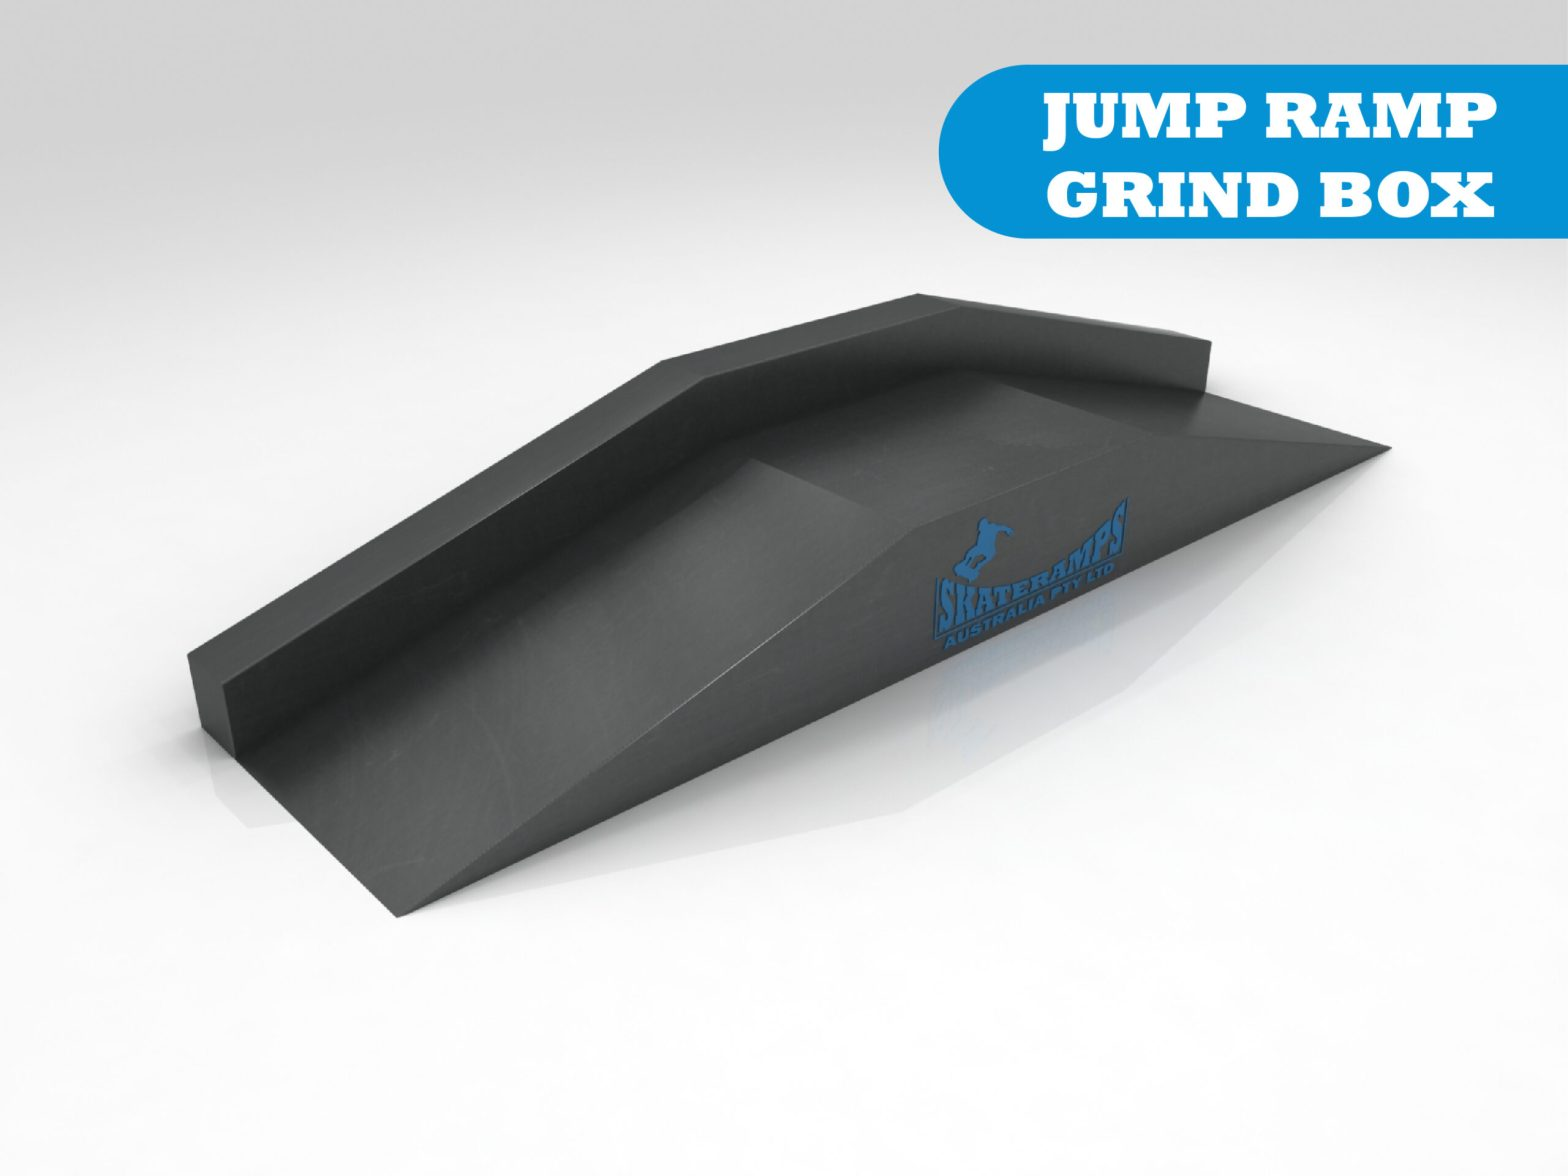 The jump ramp grind box skate ramp module is one of the modules available for councils and commercial organisations from Skateramps Australia